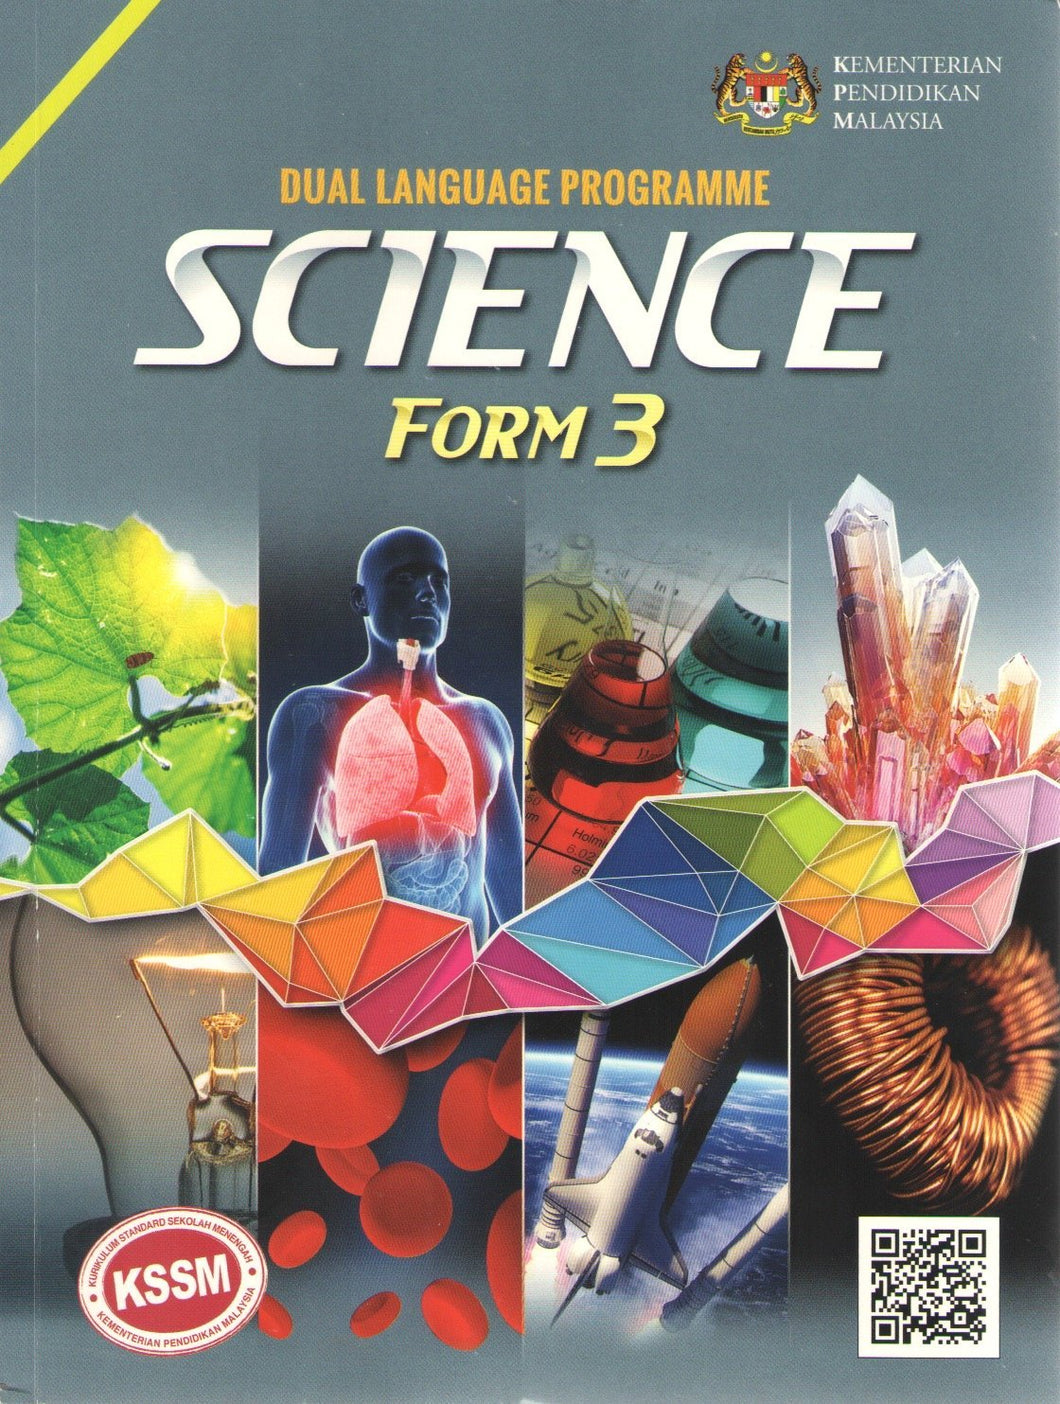 Sasbadi: Buku Teks Science Form 3 DLP Textbook